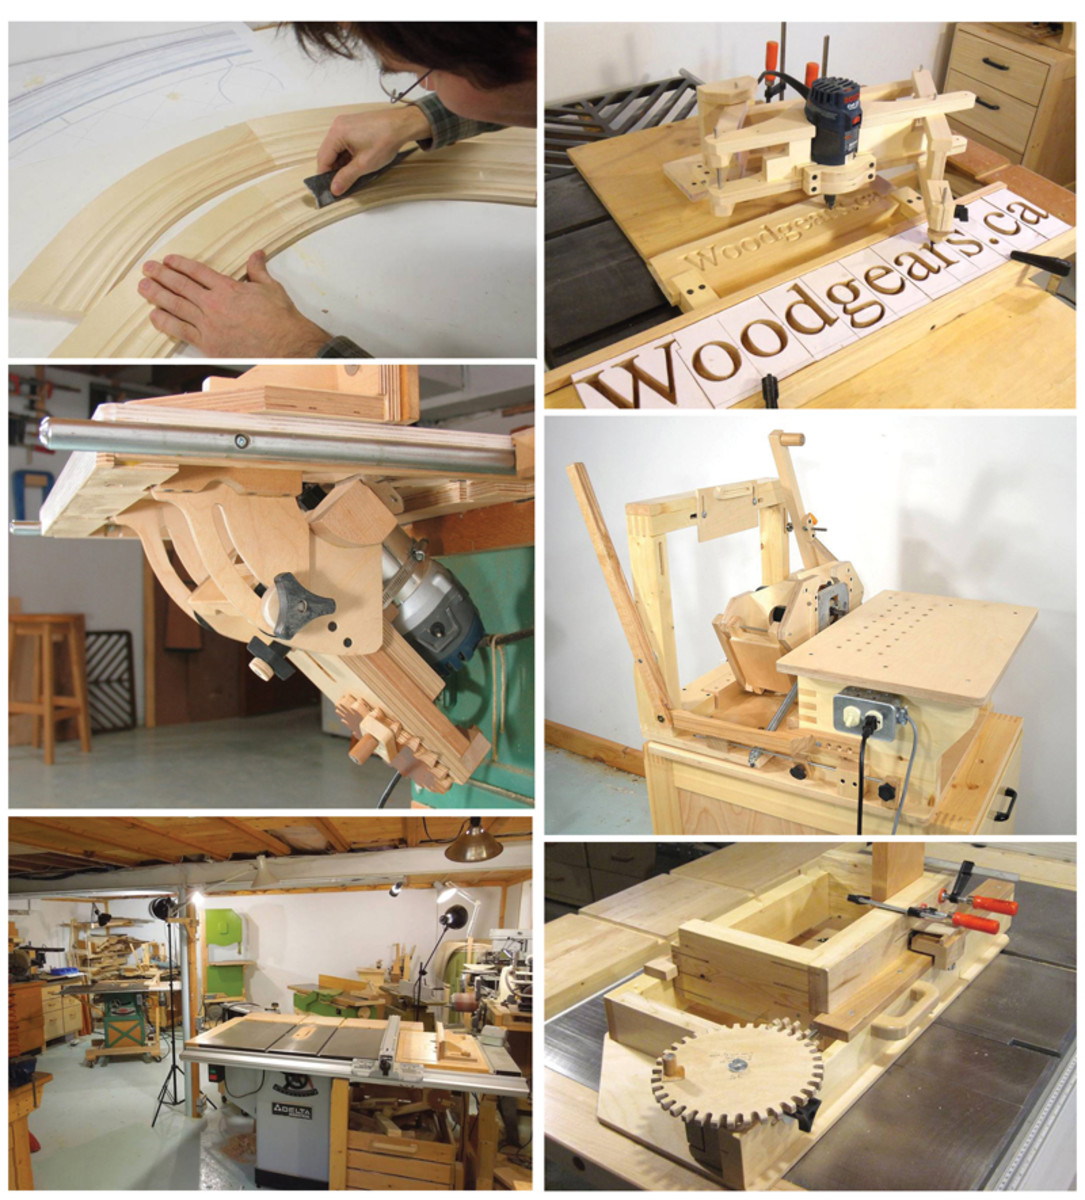 Jig builder Matthias Wandel shows (clockwise) a wooden-geared box-joint jig, curved moldings made on his tilting router lift, a horizontal boring machine, the height-adjustable pantograph, his workspace and the tilting router attached to a table saw.